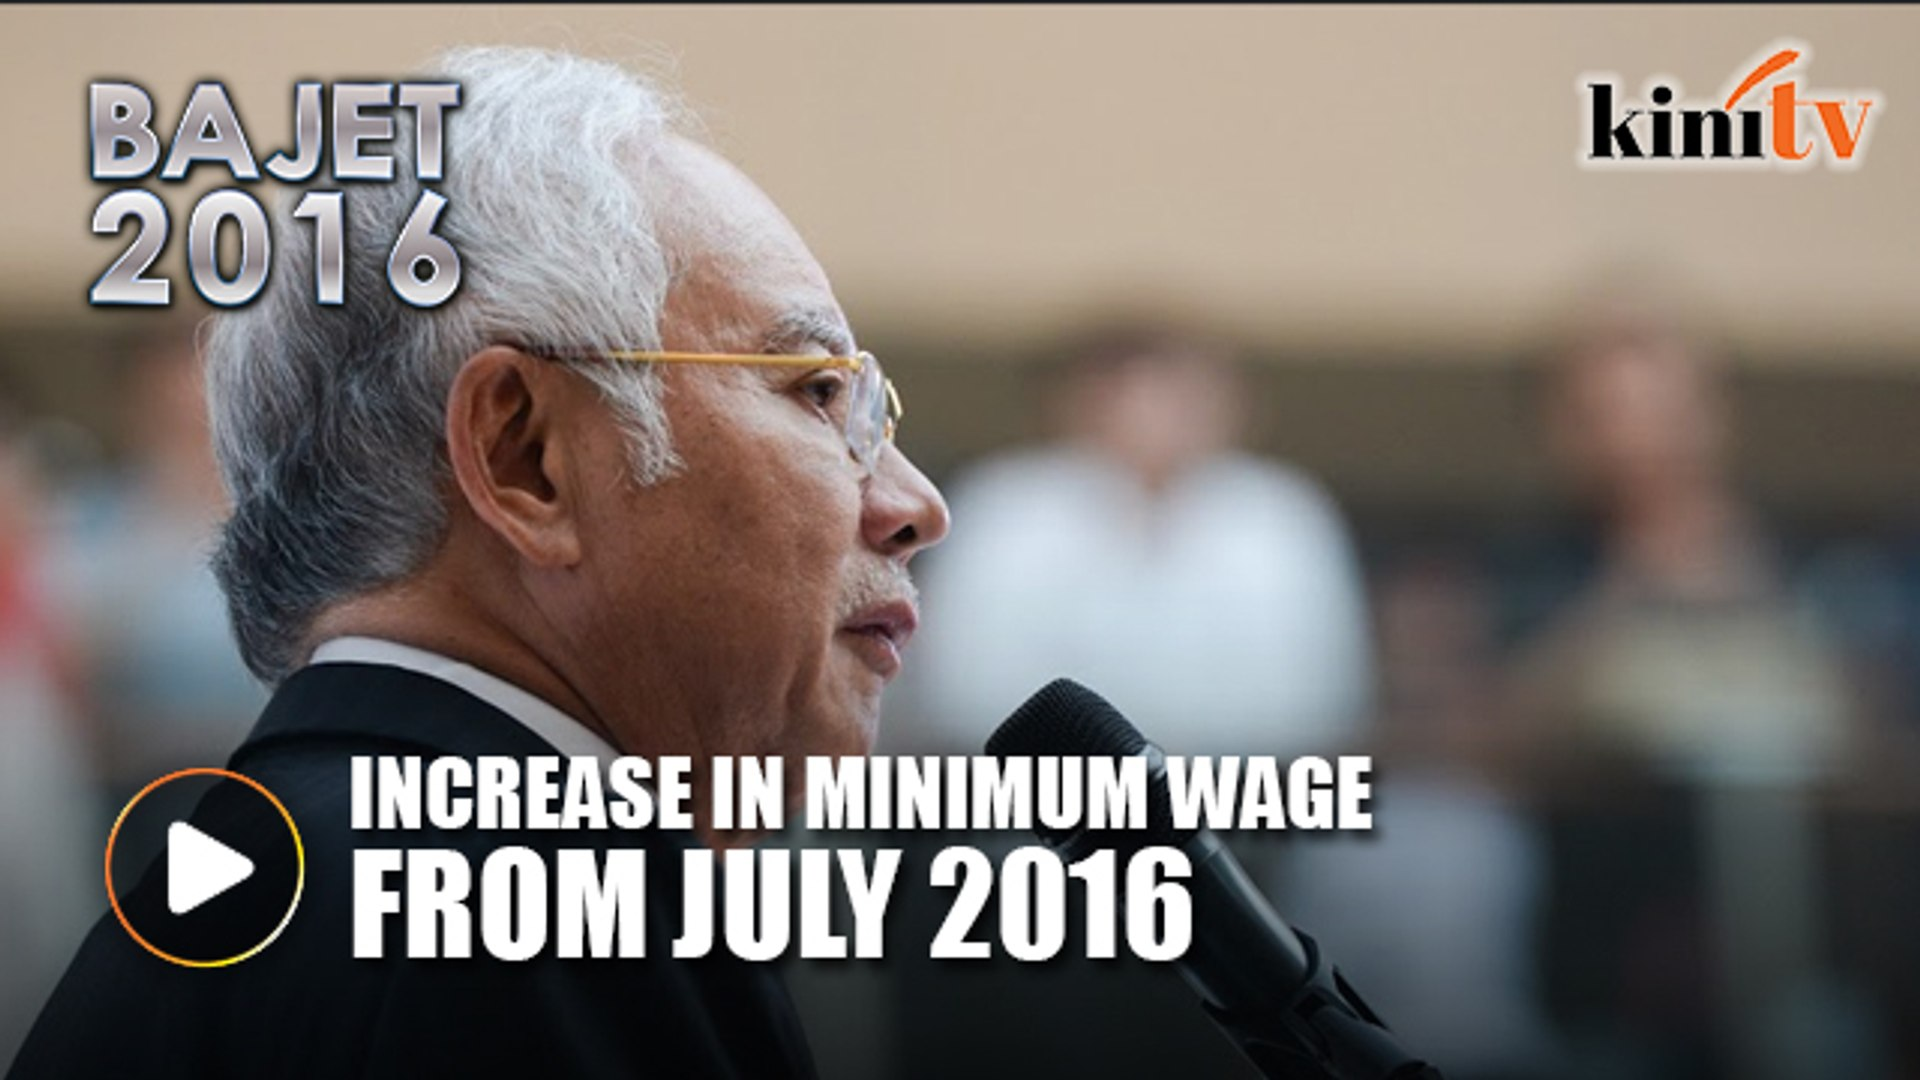 Minimum wage to increase from July 2016